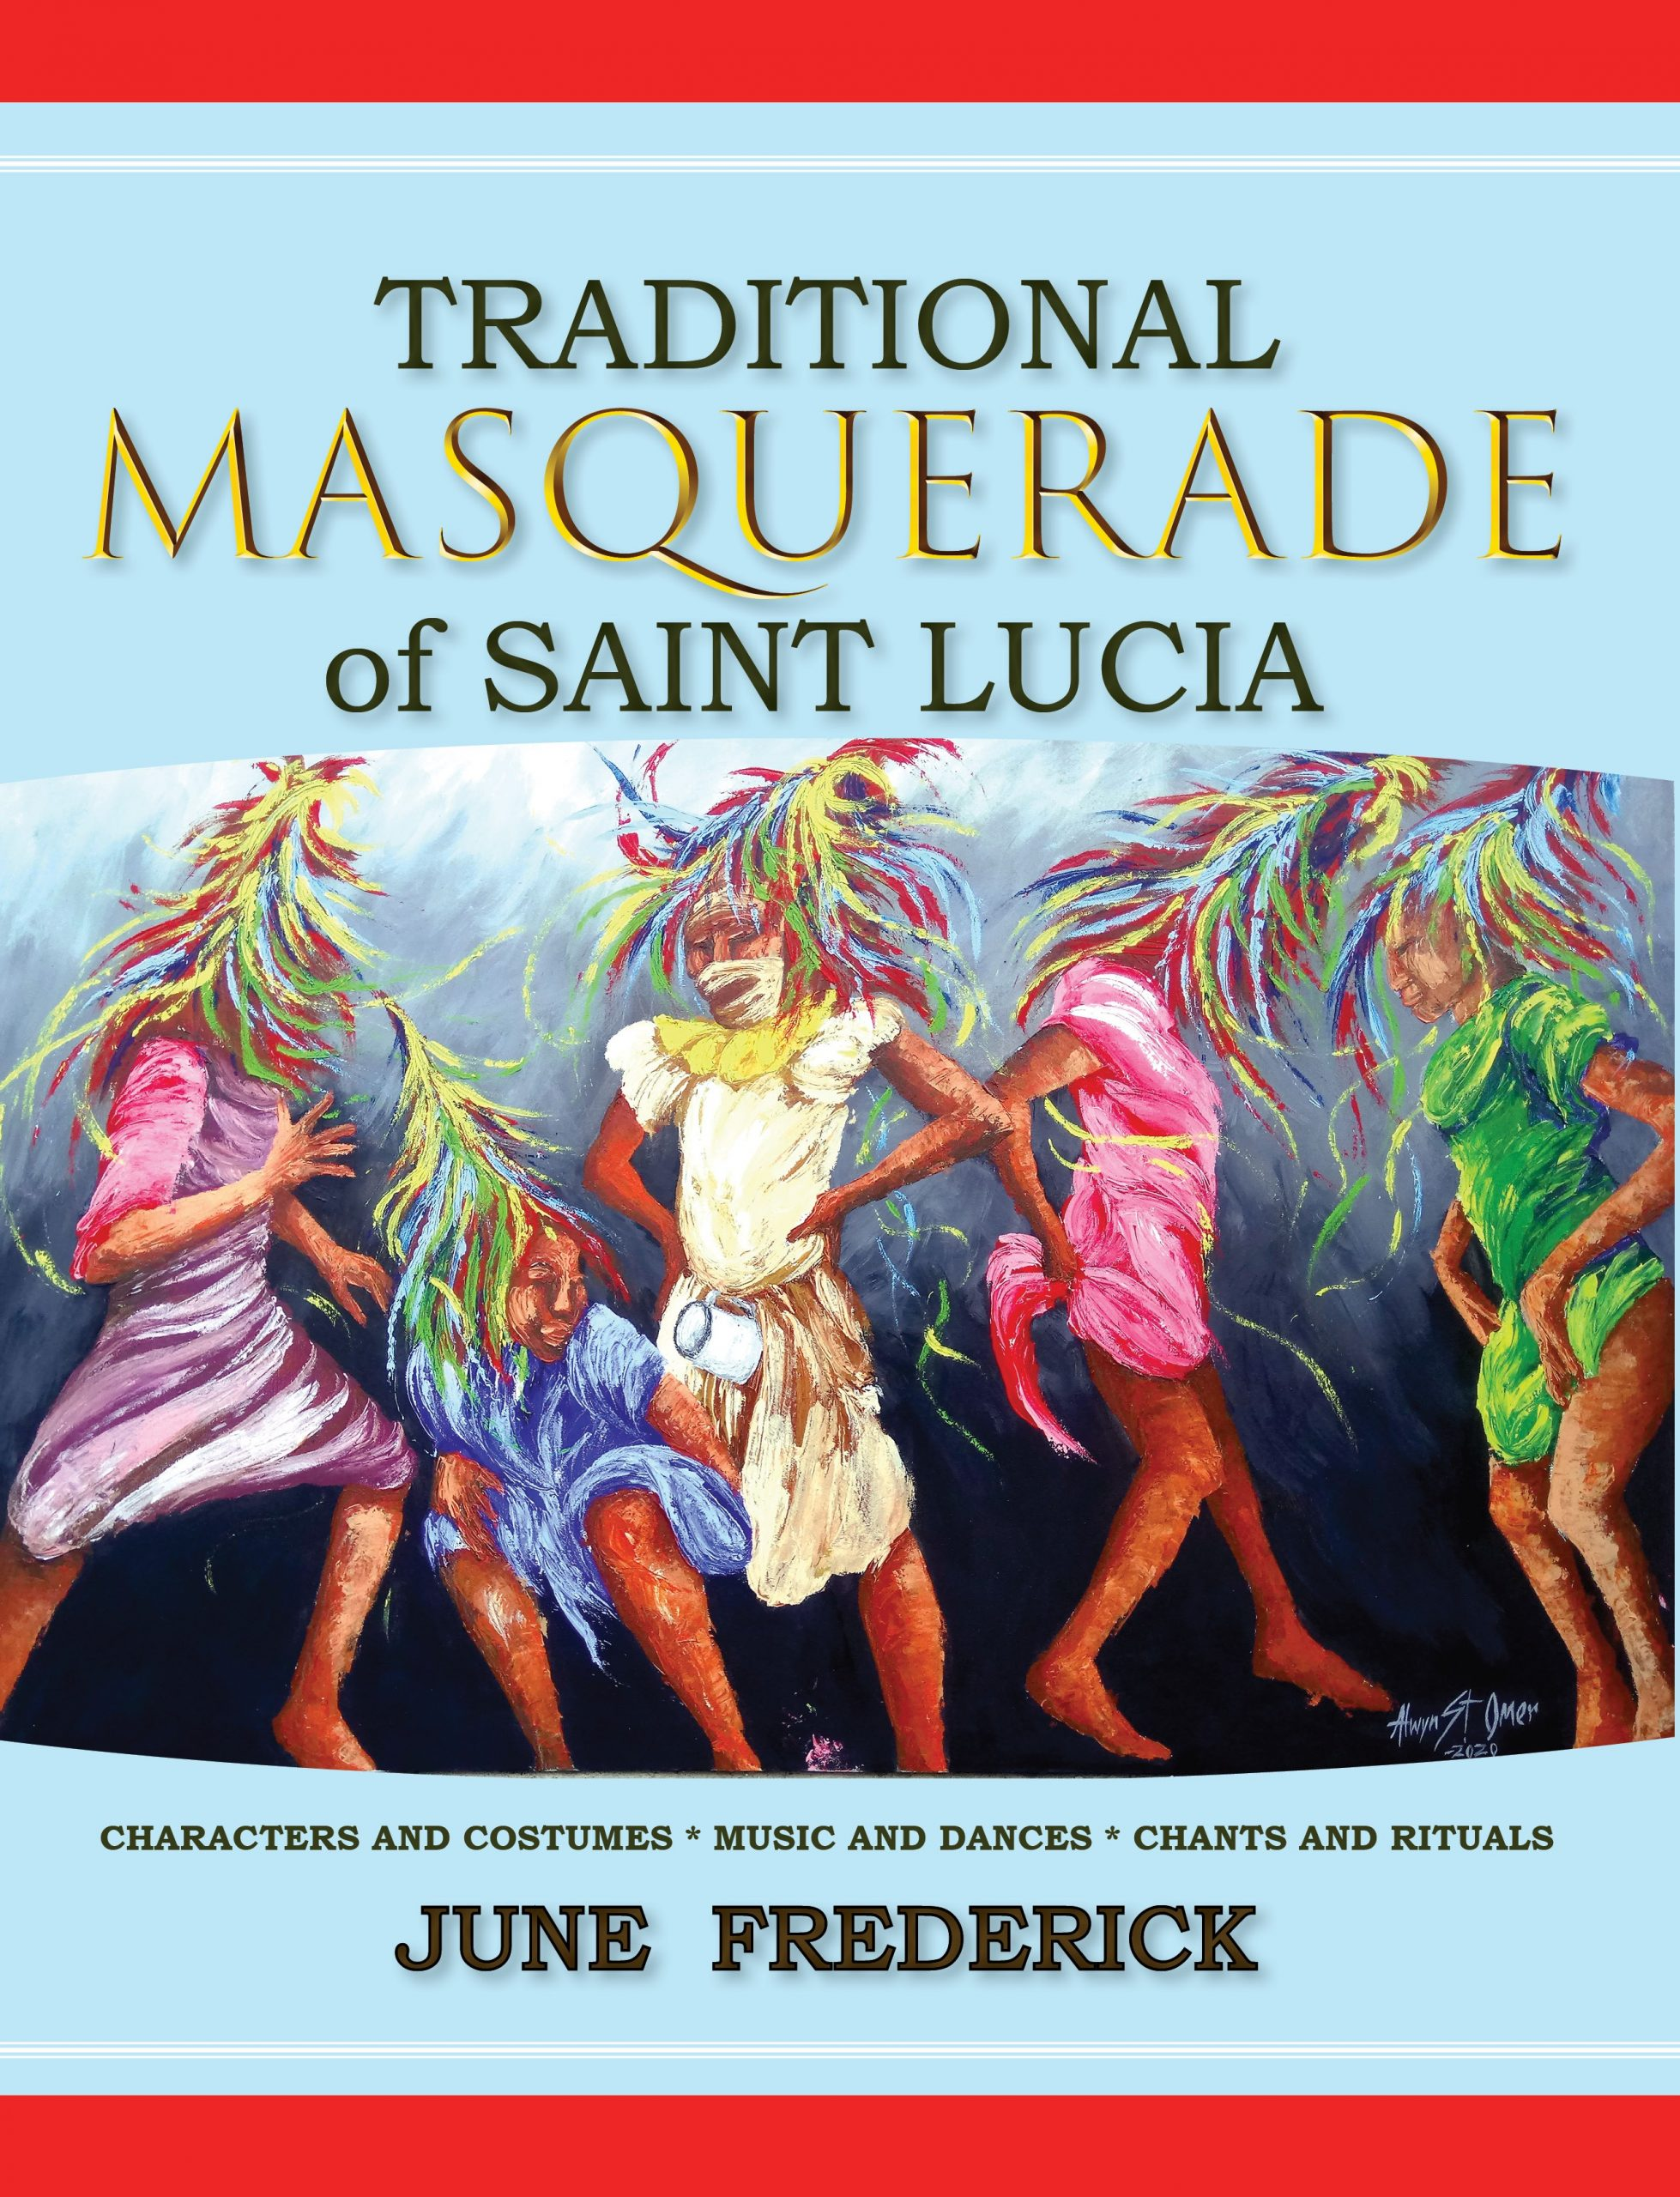 Traditional Masquerade of St. Lucia by June Frederick